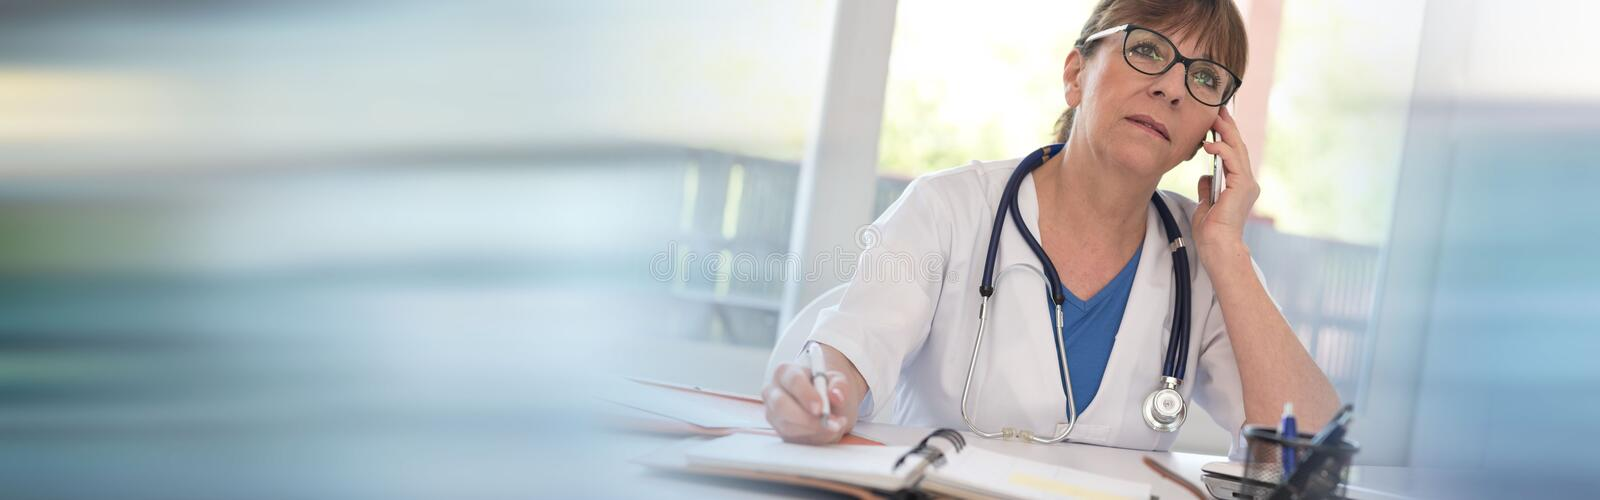 Female doctor talking on mobile phone. In medical office stock photo